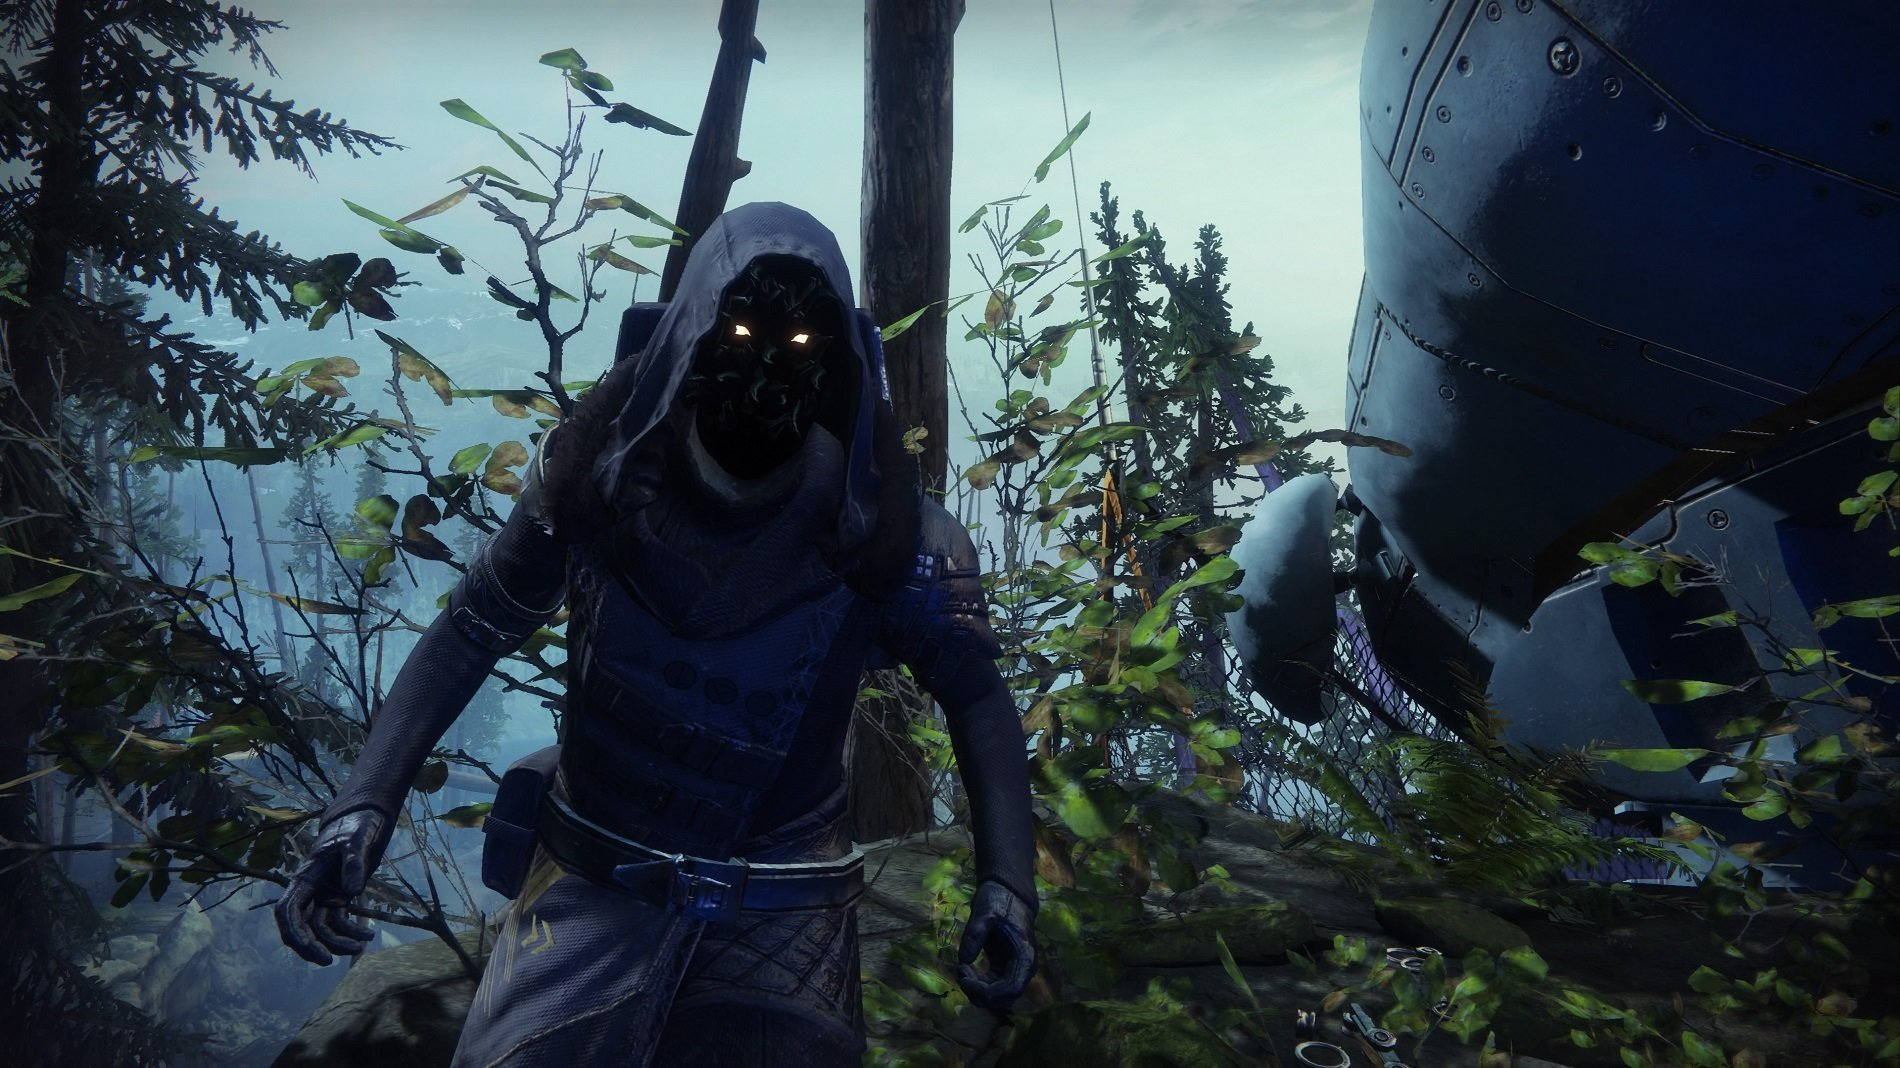 Where to find Xur in Destiny 2 - September 18, 2020